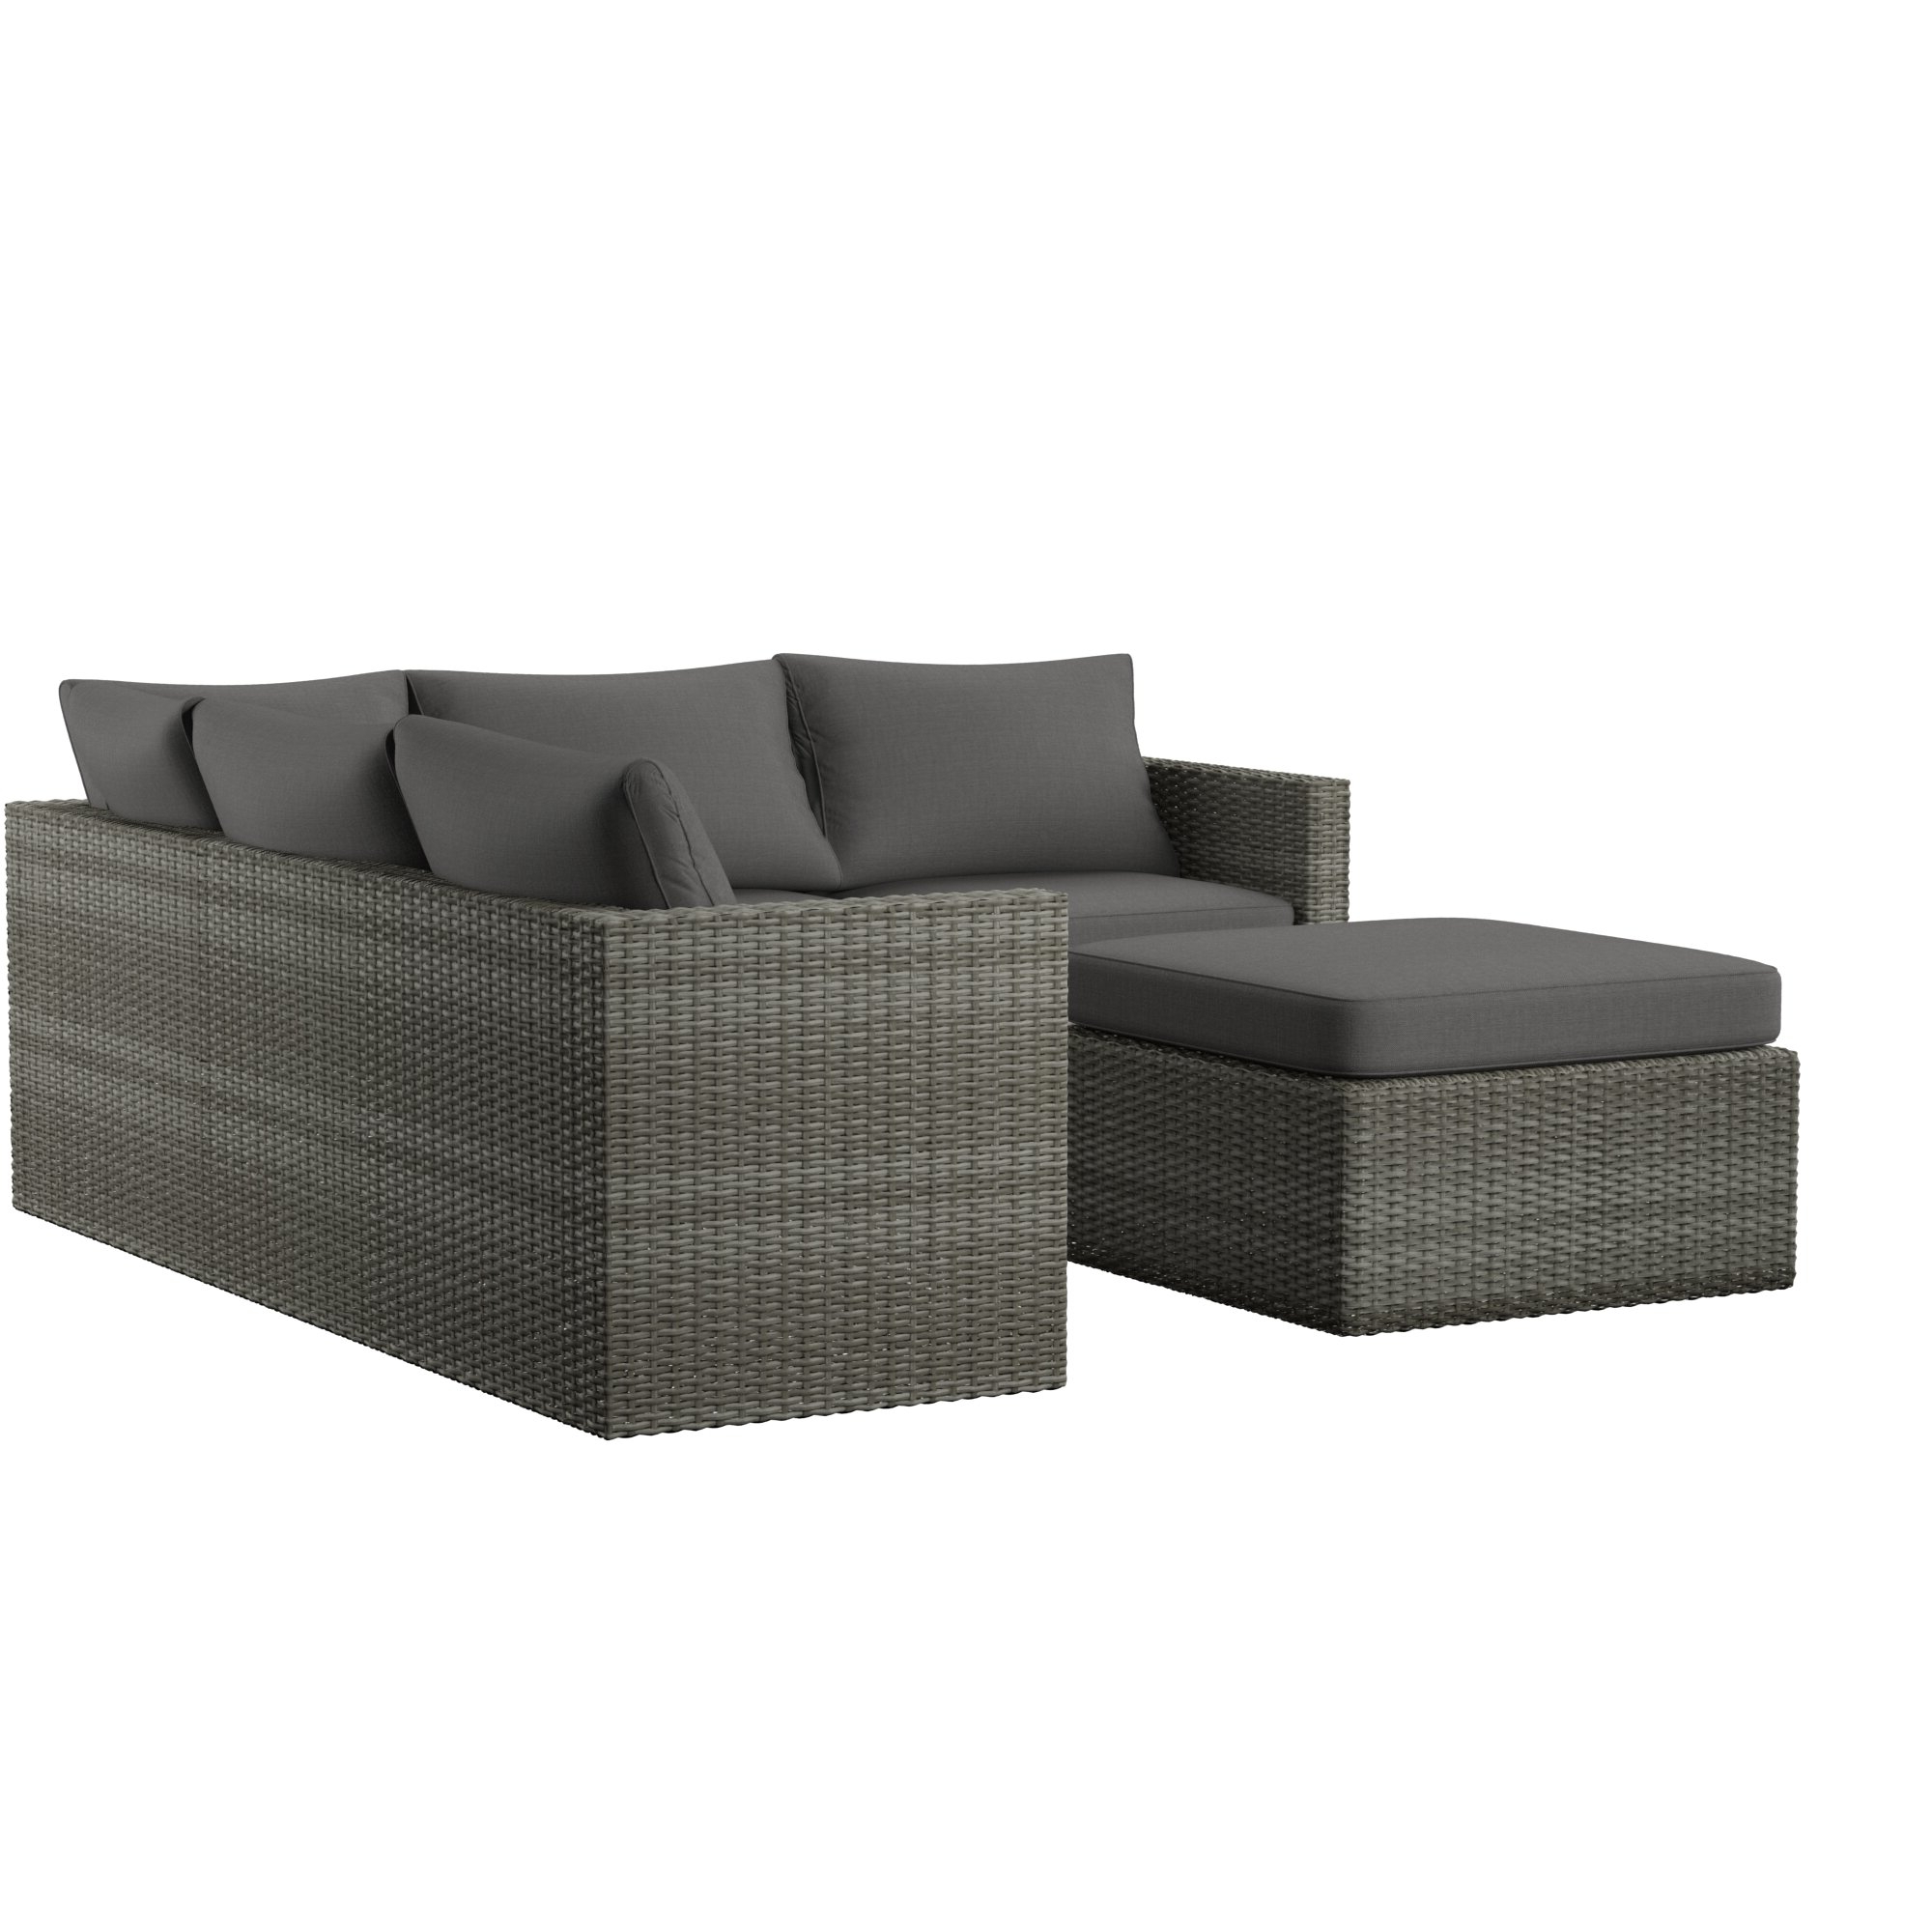 Modern Patio Sofas (View 8 of 20)